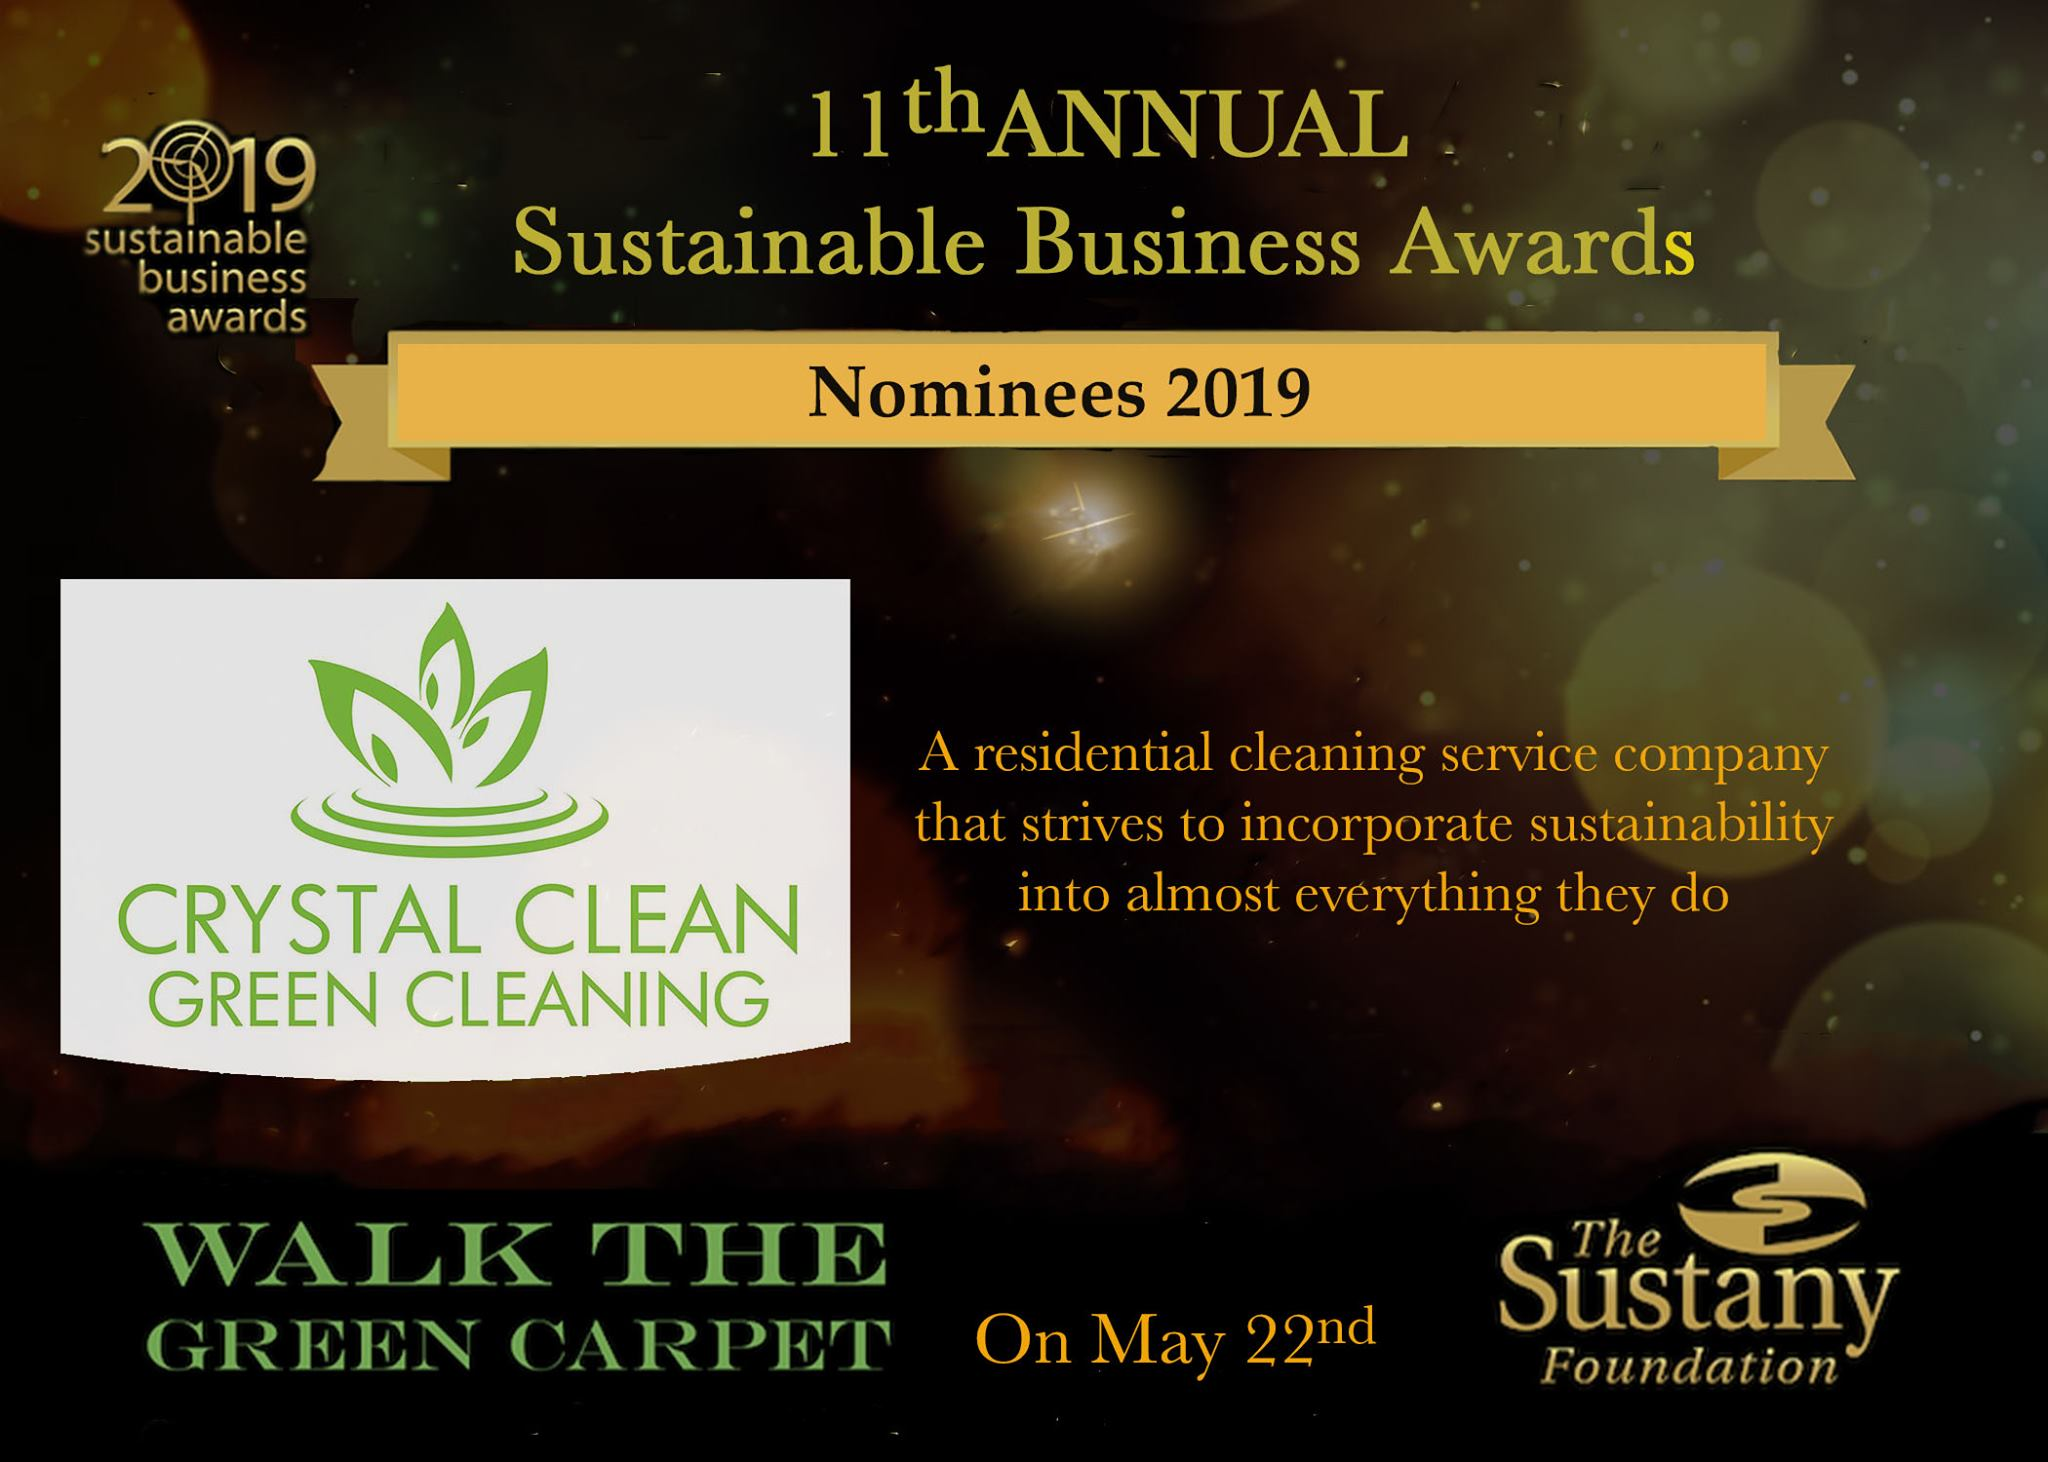 Sustainable Business Awards - 2019 Nominee in the Small Business Category - The Award Ceremony to be hosted at The Florida Theatre in Tampa, May 22nd, 2019